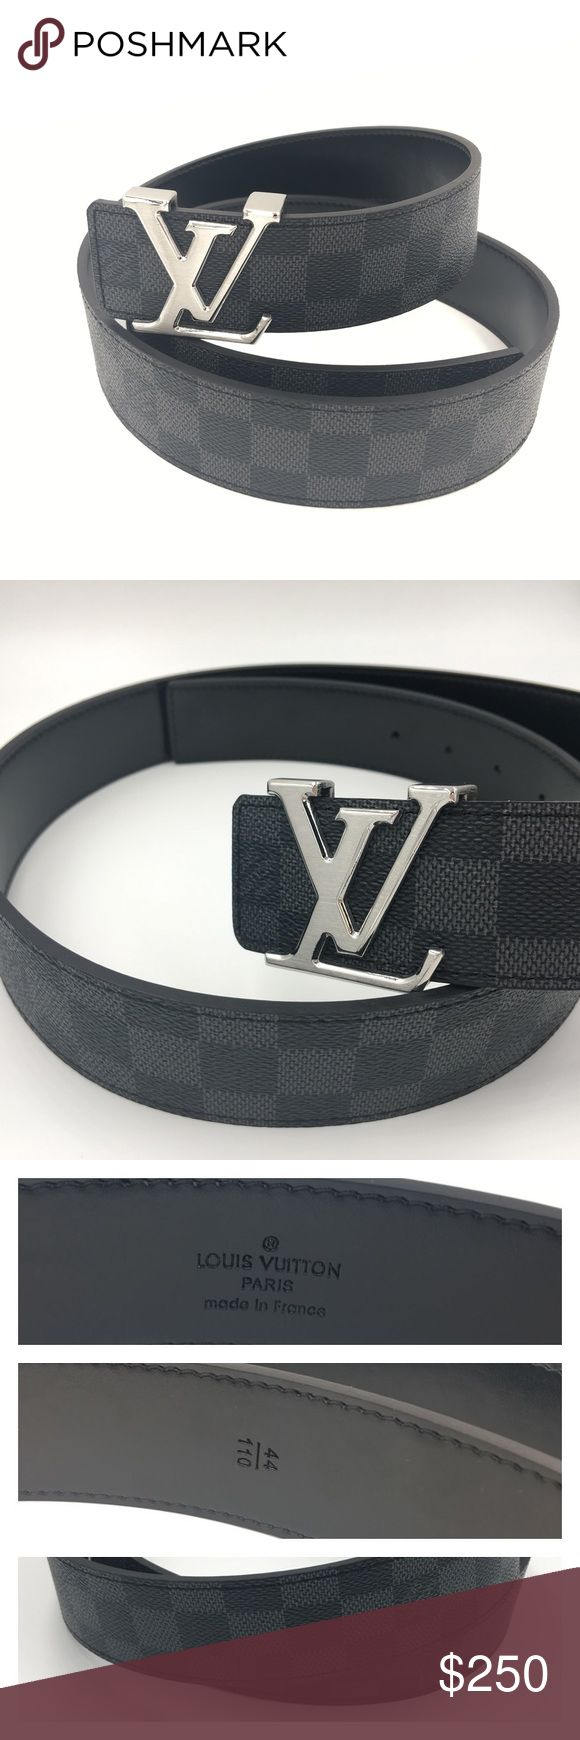 "Louis Vuitton Damier Belt 44/110 LV Initial Men's 110cm long (43""),  width of 44mm ( 1.7"") . Damier canvas.  Fine genuine leather with clear print. High quality piece. 99% real. Louis Vuitton Accessories Belts"